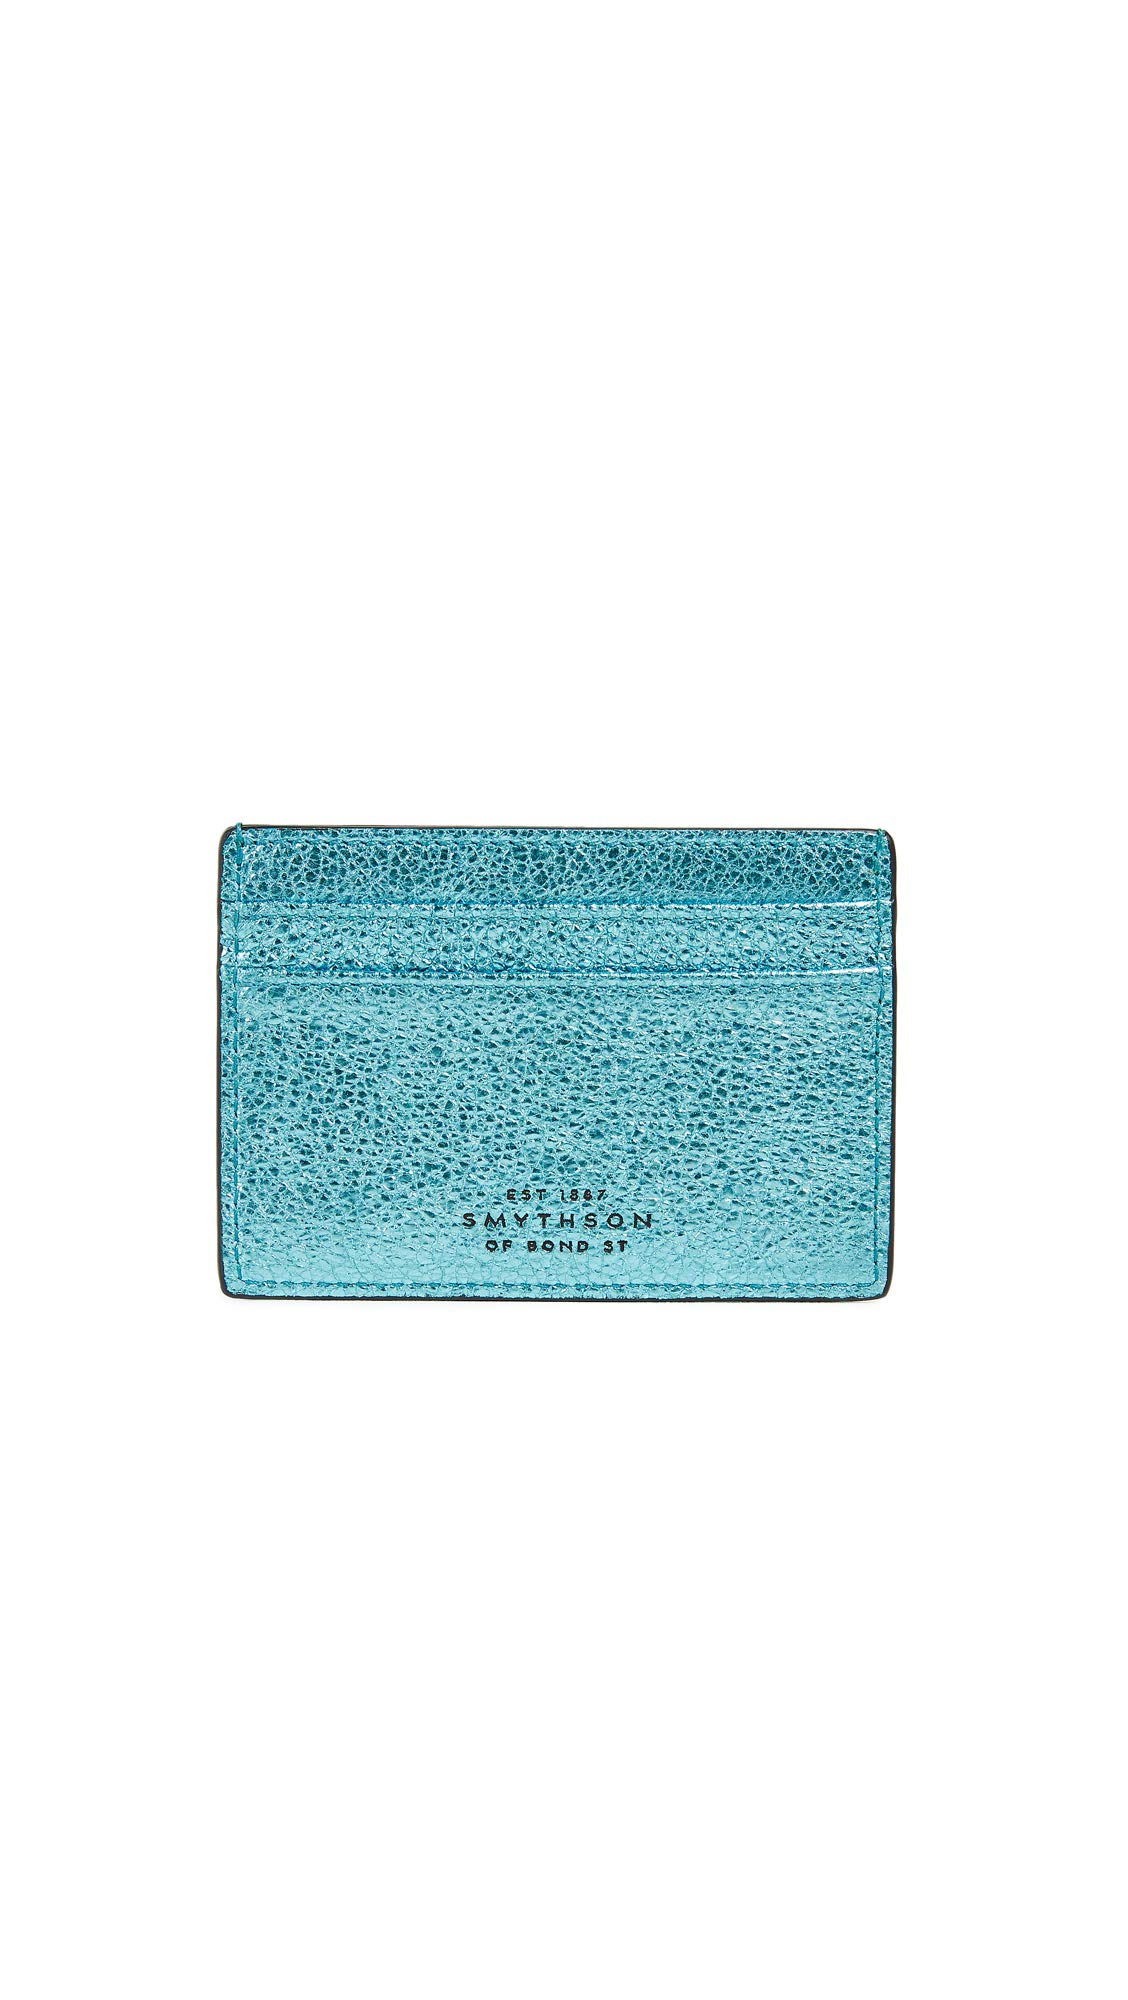 Smythson Women's Metallic Leather Flat Card Holder, Petrol Blue/Sky Blue, One Size